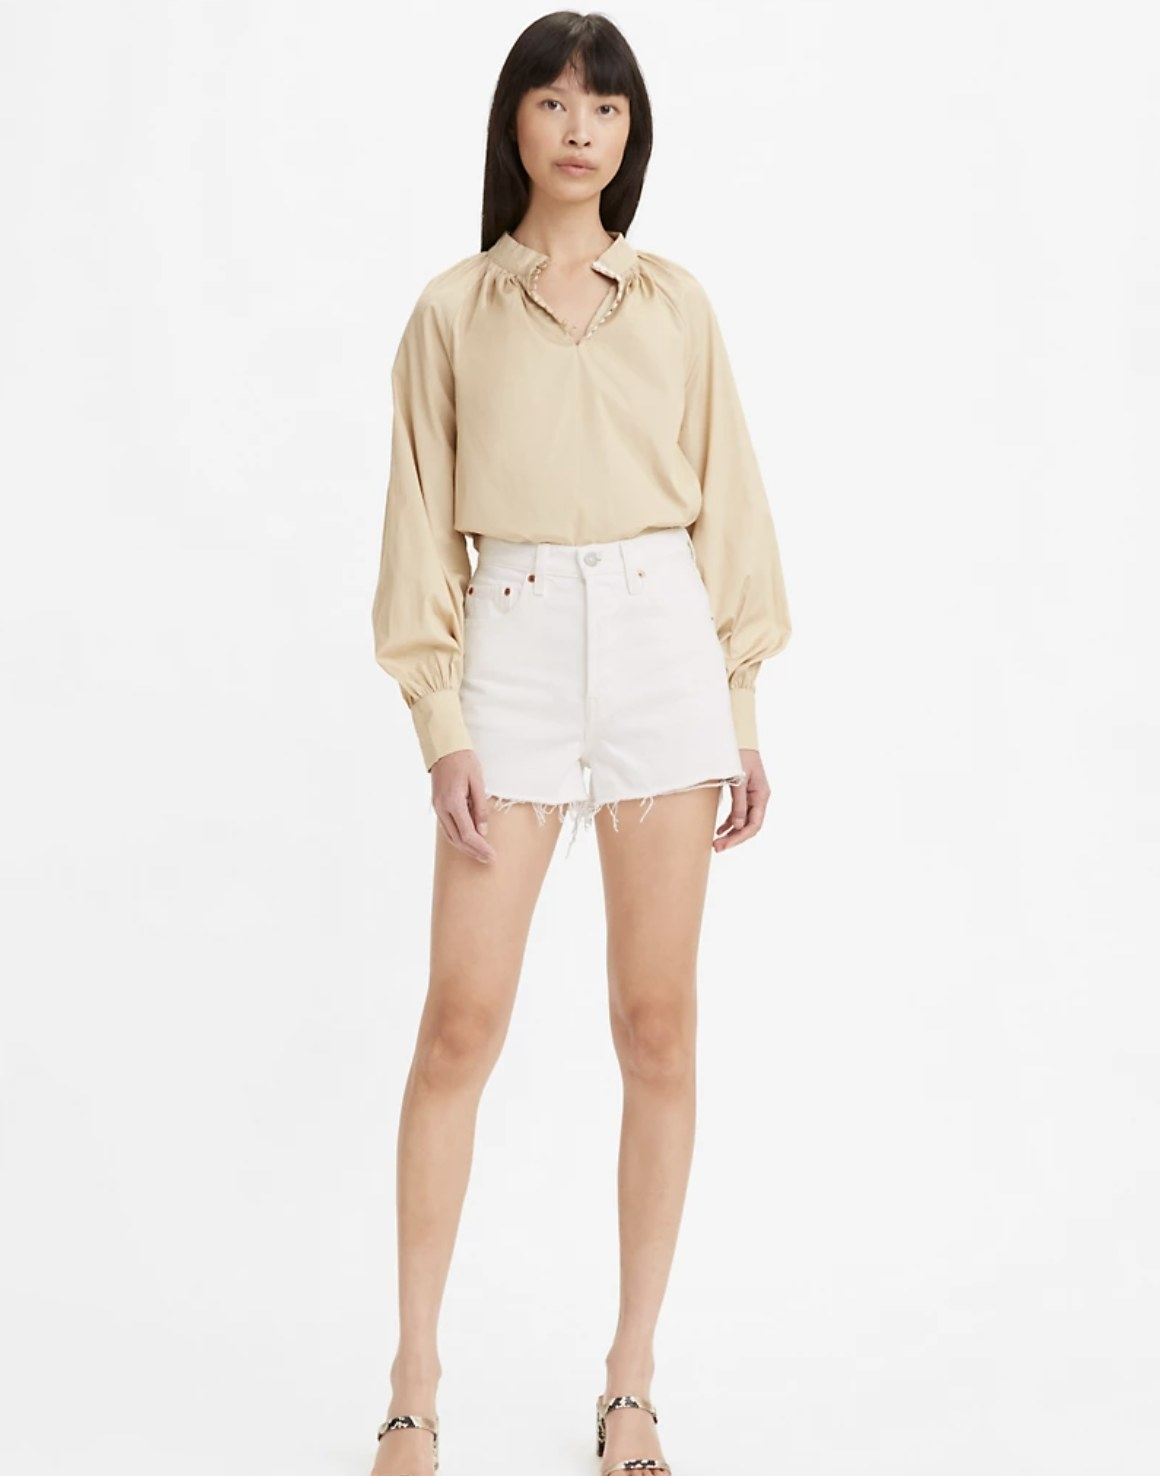 Model is wearing a beige top with white shorts